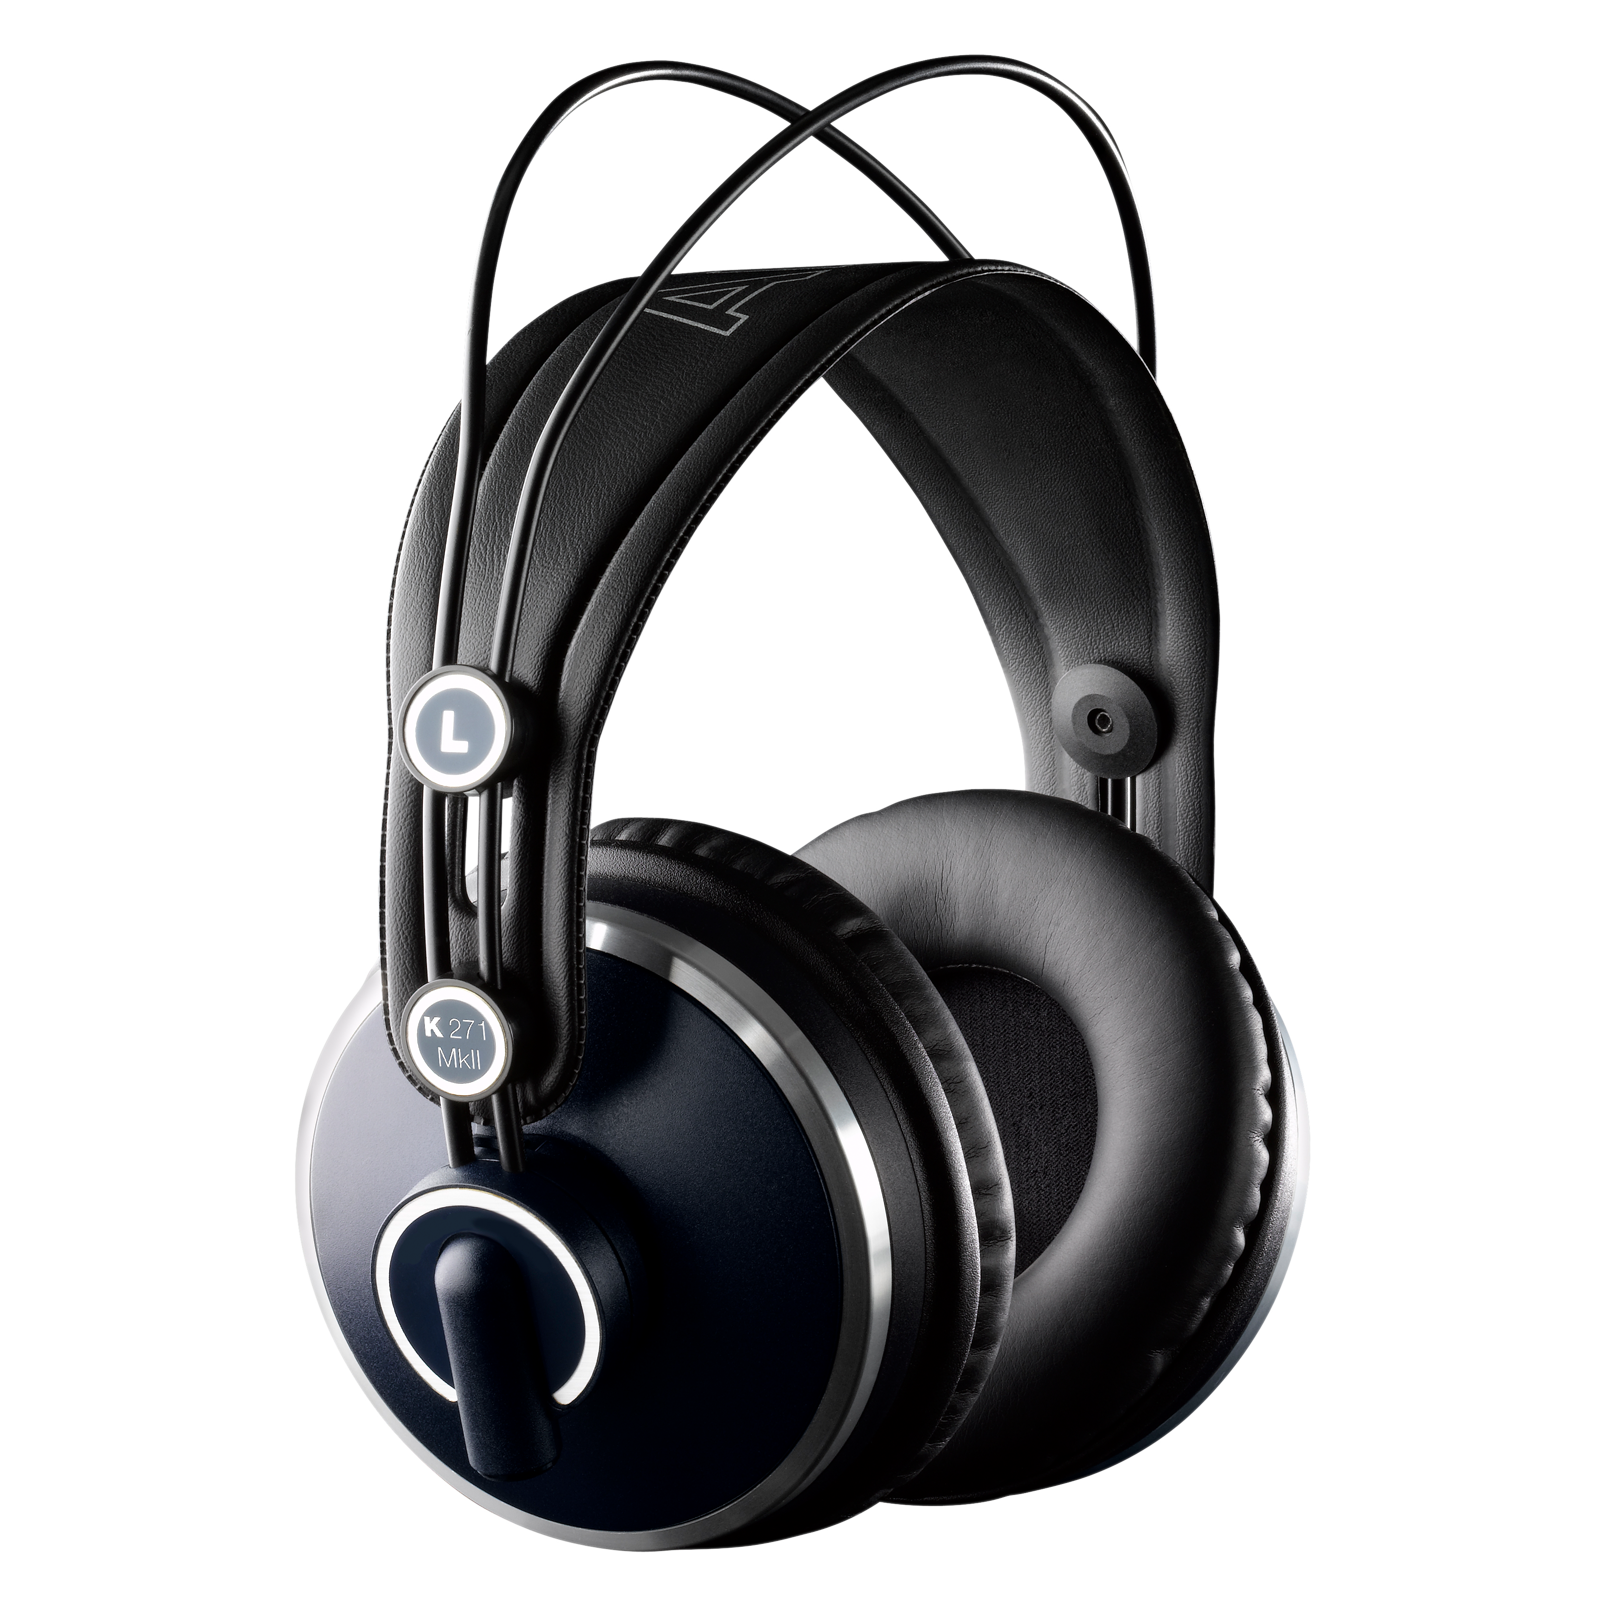 K271 MKII - Black - Professional studio headphones - Hero